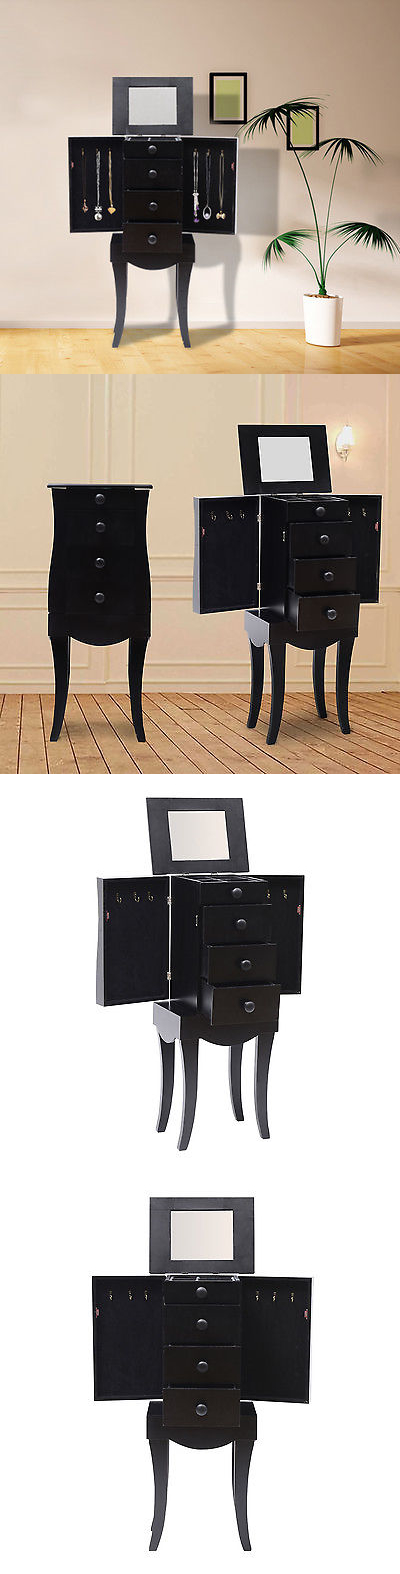 Jewelry Boxes 3820: Jewelry Armoire Box Storage Chest Cabinet Necklace Organizer Mirror Stand Black BUY IT NOW ONLY: $72.99